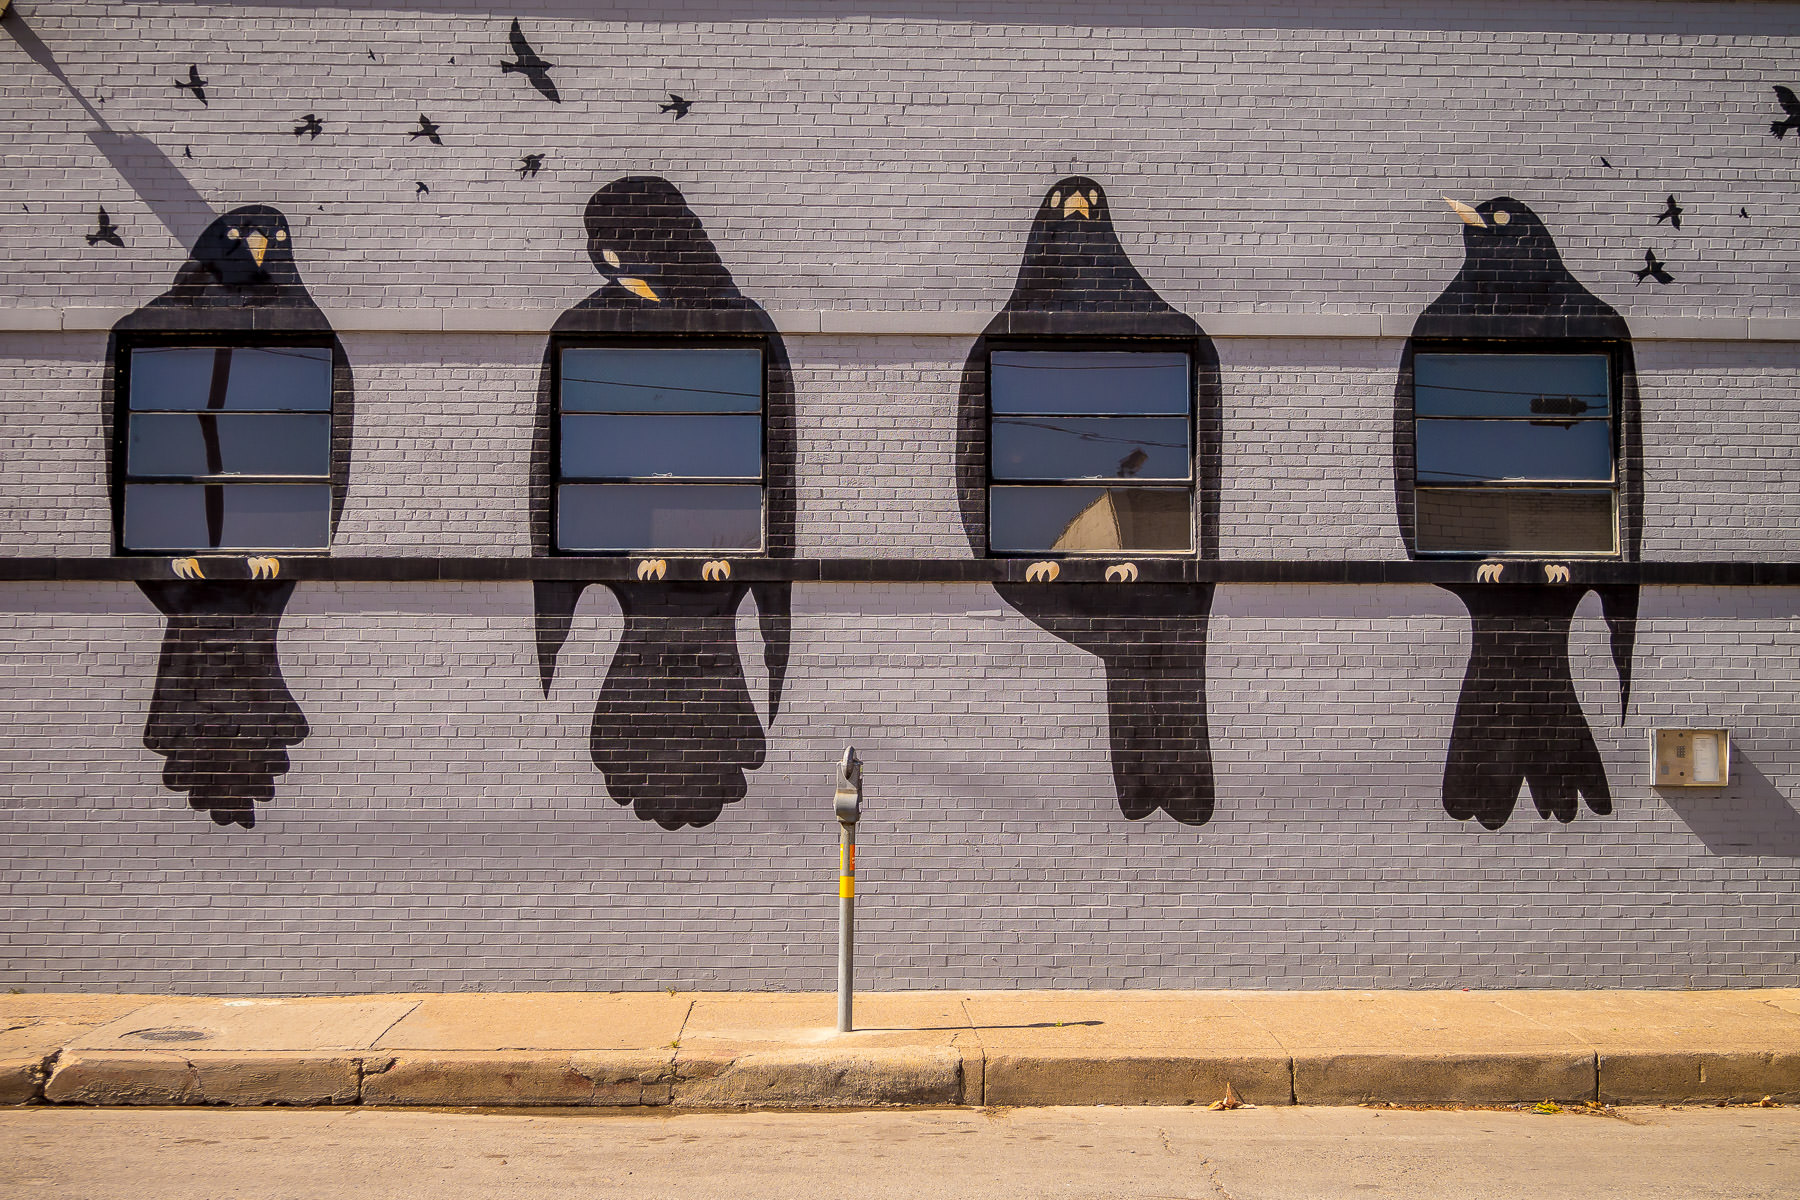 A mural of blackbirds frames four windows on a building in Deep Ellum, Dallas, Texas.